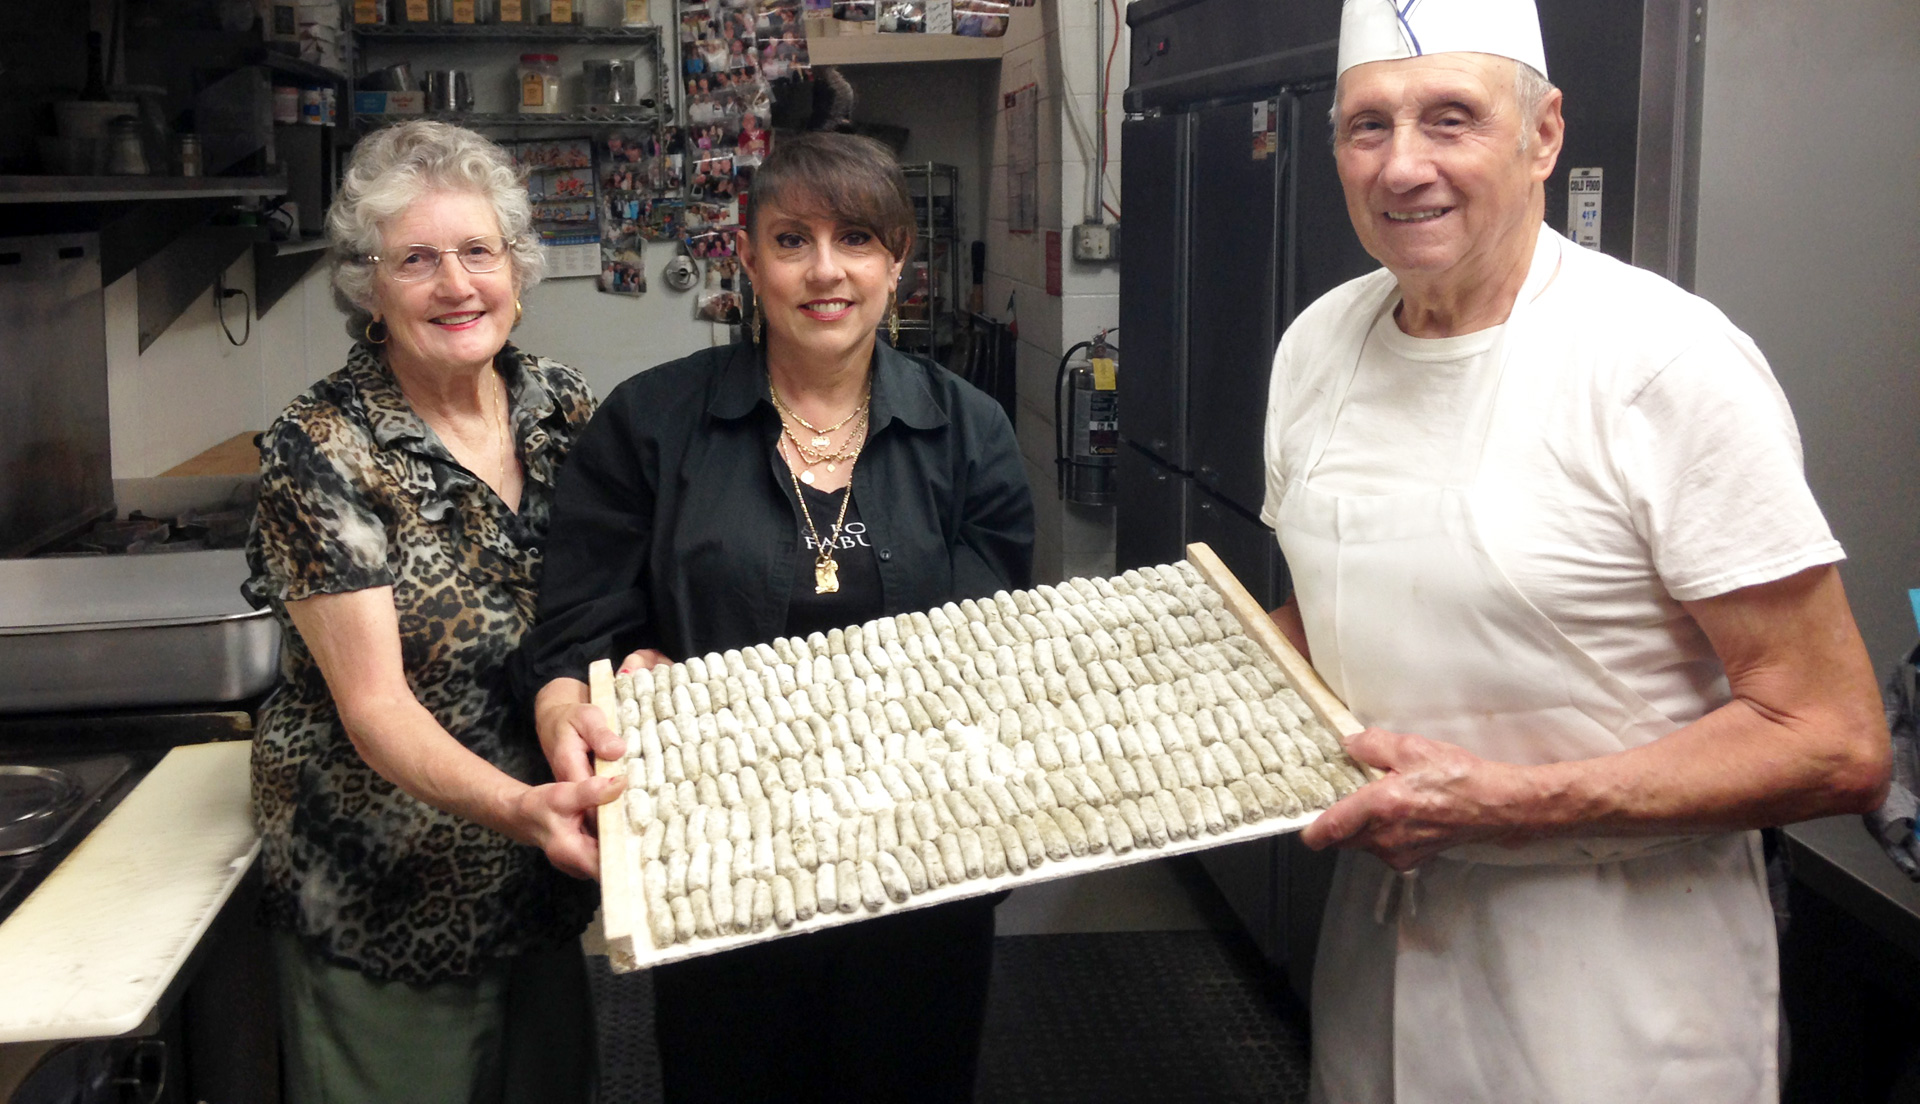 Mary Cittoni, Joanne Cittoni Gonzales and Clemente Cittoni all work together, making malfatti and other recipes he learned from Theresa Tamburelli at The Depot Restaurant.